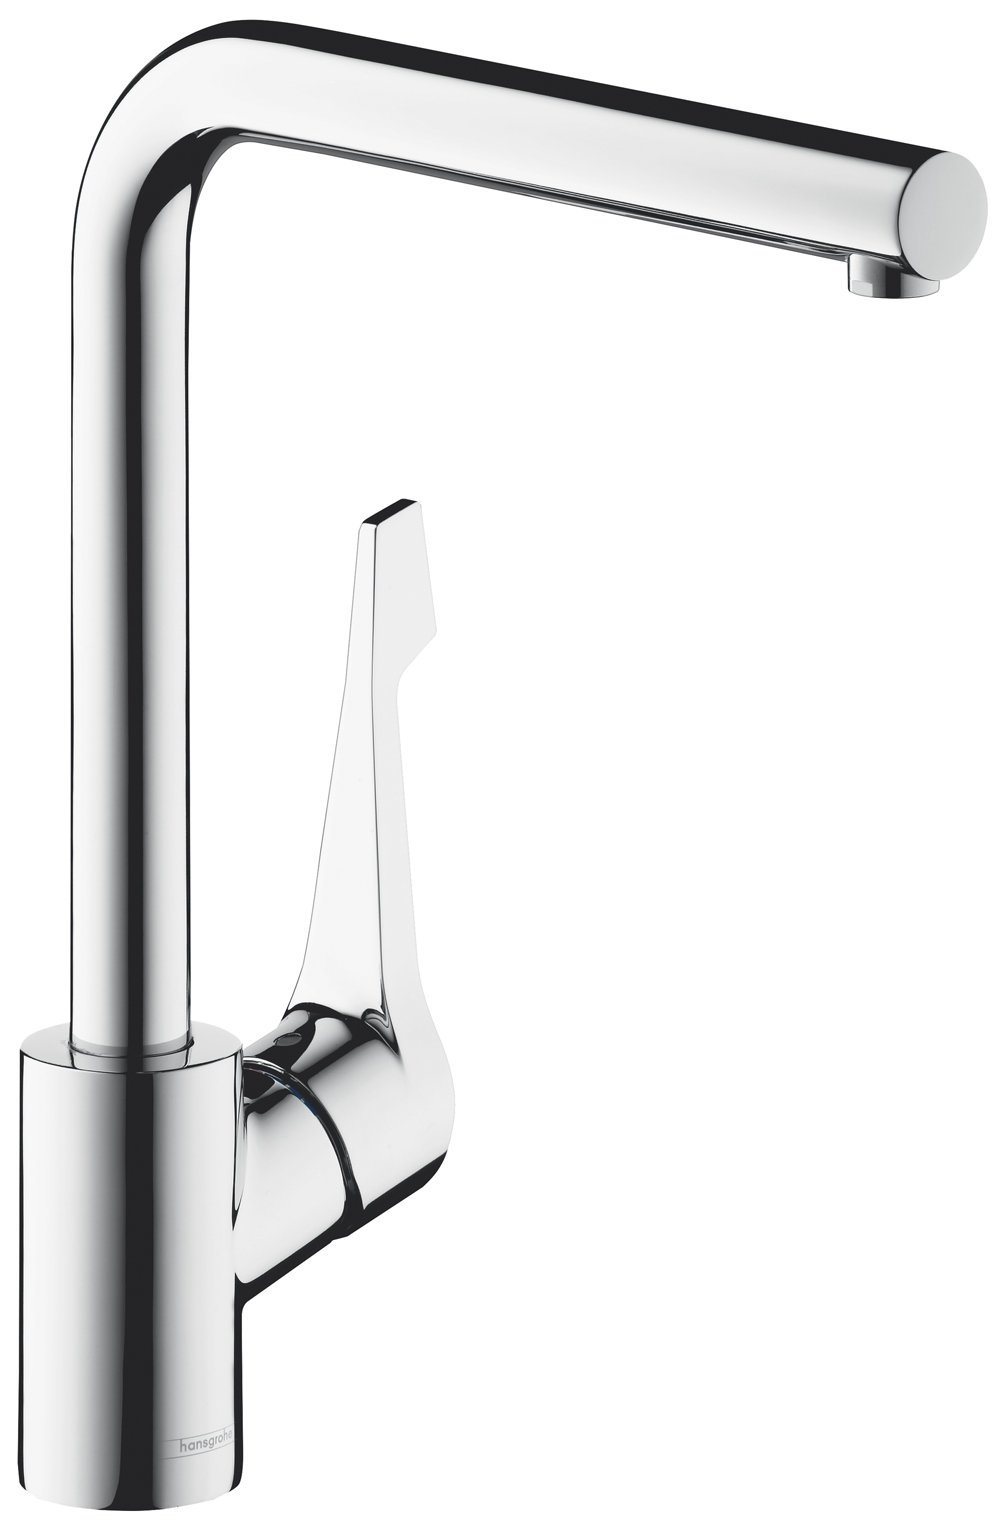 Hansgrohe 14802003 Cento Square L Right Angle Kitchen Mixer Tap ...